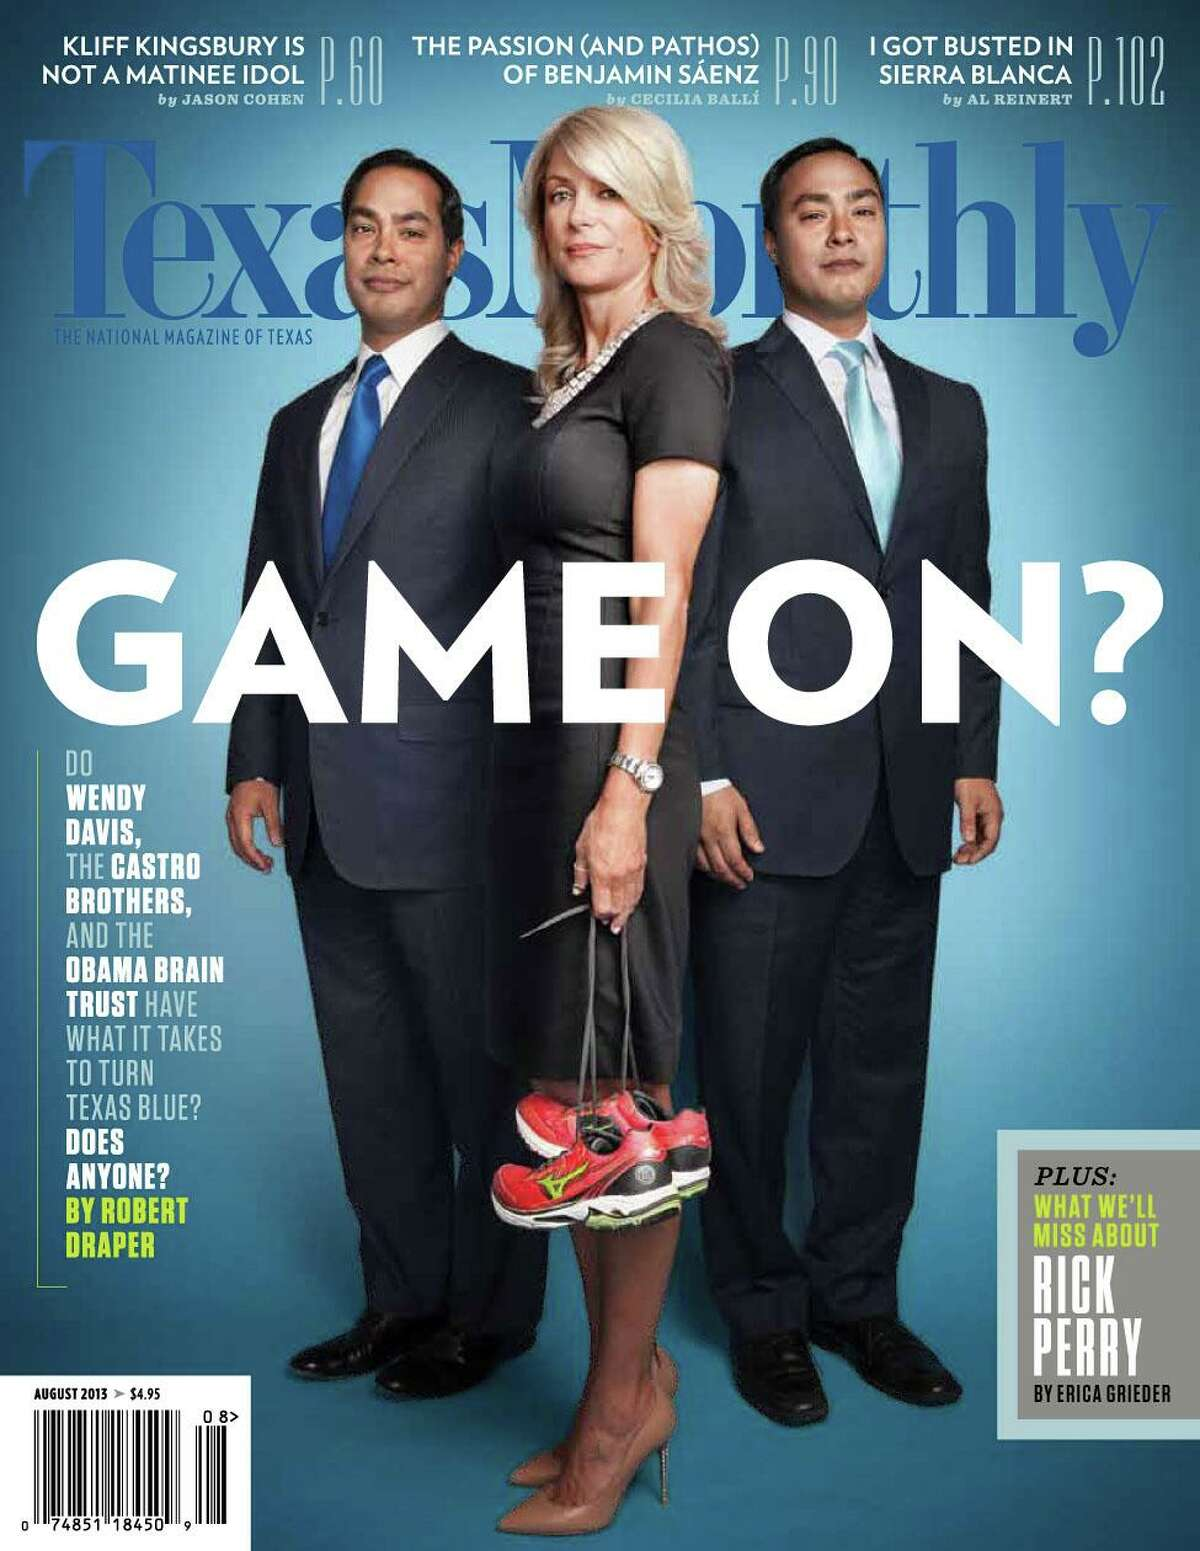 The August 2013 cover of Texas Monthly magazine, featuring San Antonio Mayor Julian Castro, left, State Senator Wendy David, and U.S. Representative Joaquin Castro, is seen in an image taken from the magazine's Twiiter feed.